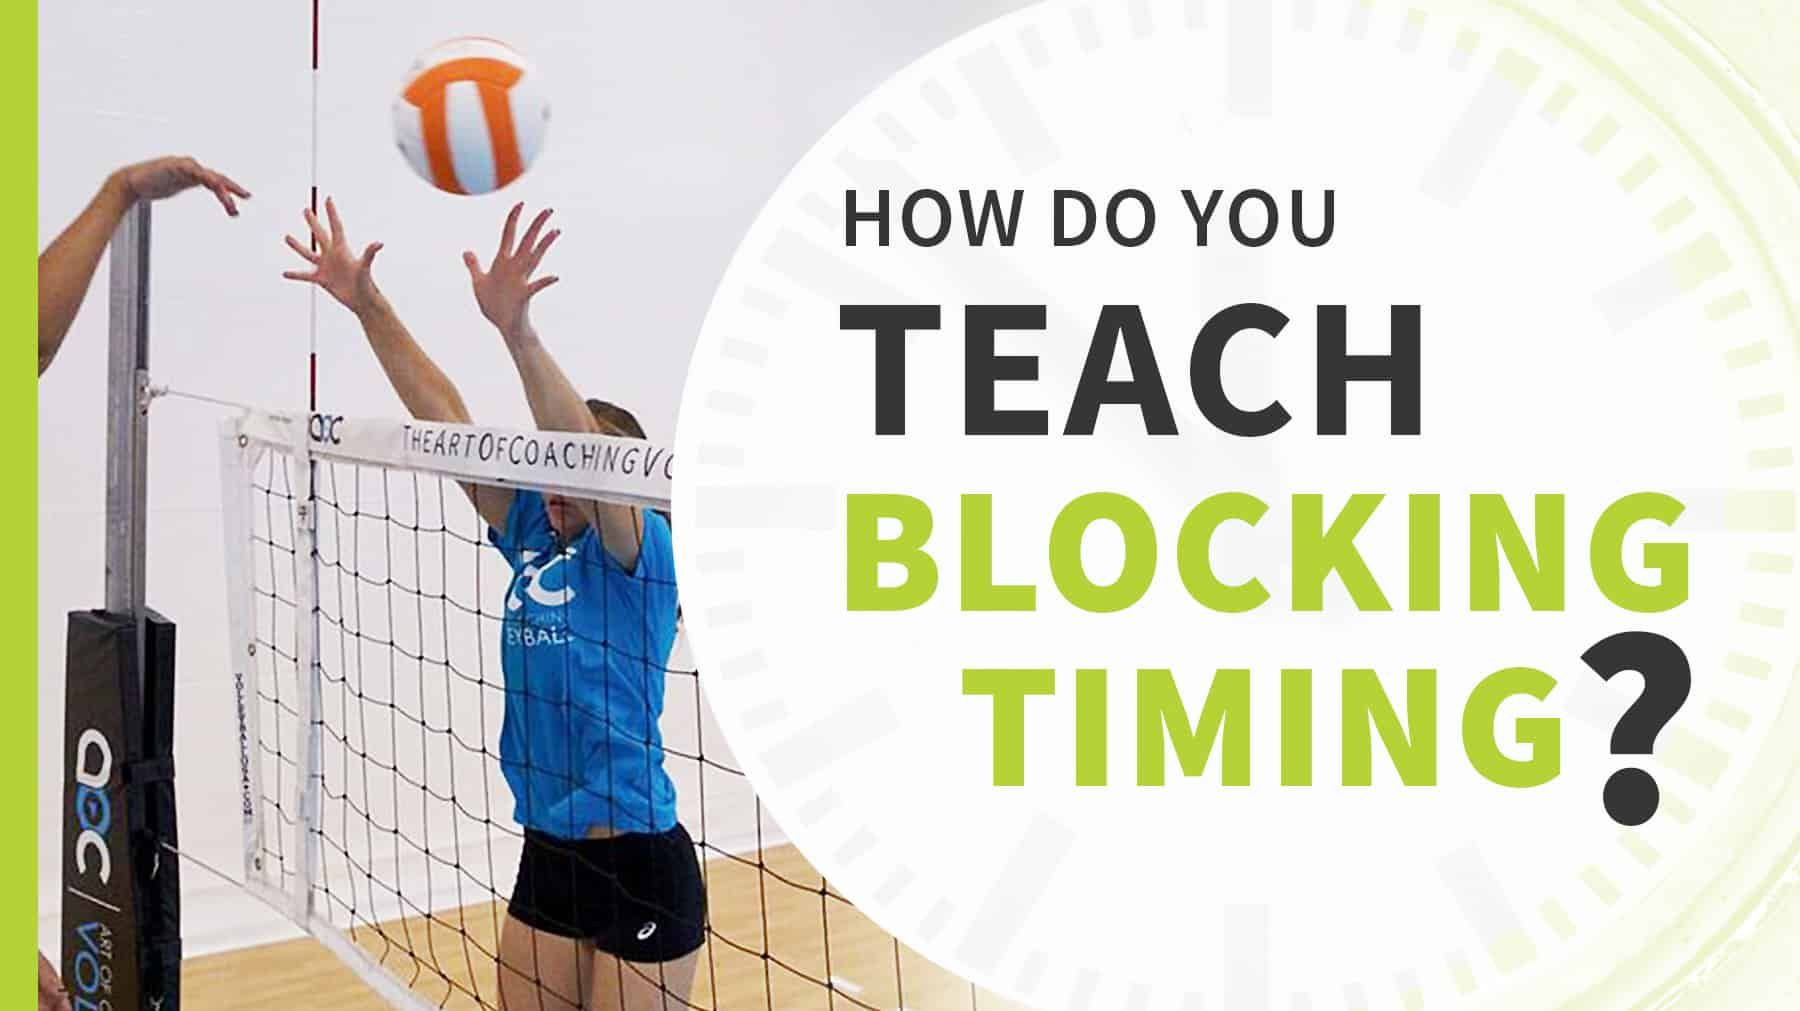 Increasing Defensive Range Drill To Teach Blocking Timing The Art Of Coaching Volleyball Volleyball Workouts Coaching Volleyball Volleyball Skills